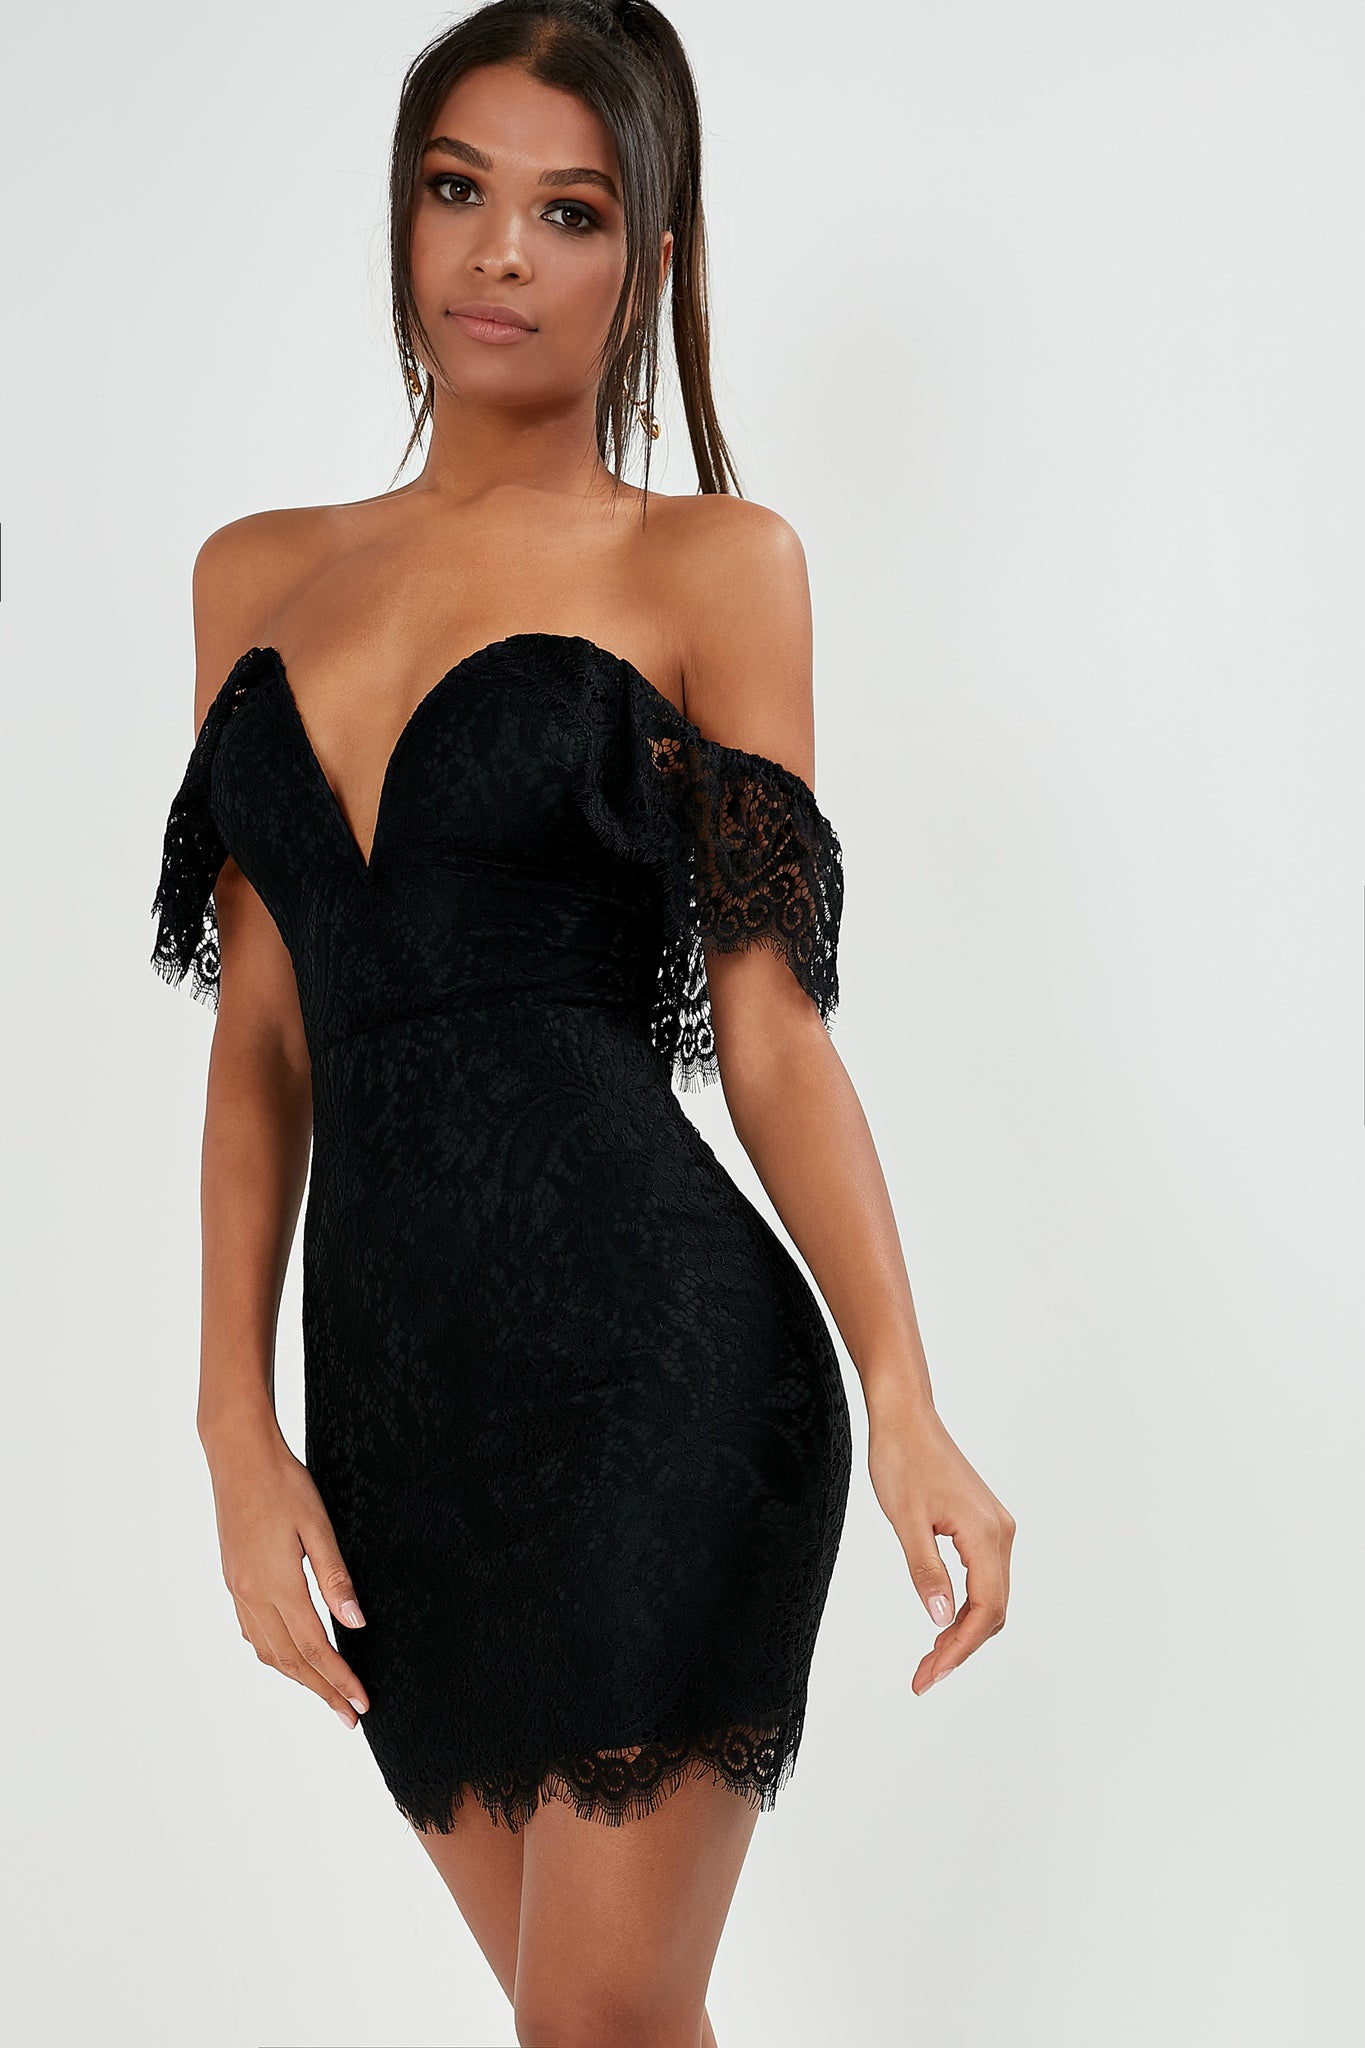 5dc06eff0a85 Gitika Black Lace Bardot Dress. €36.99. Previous